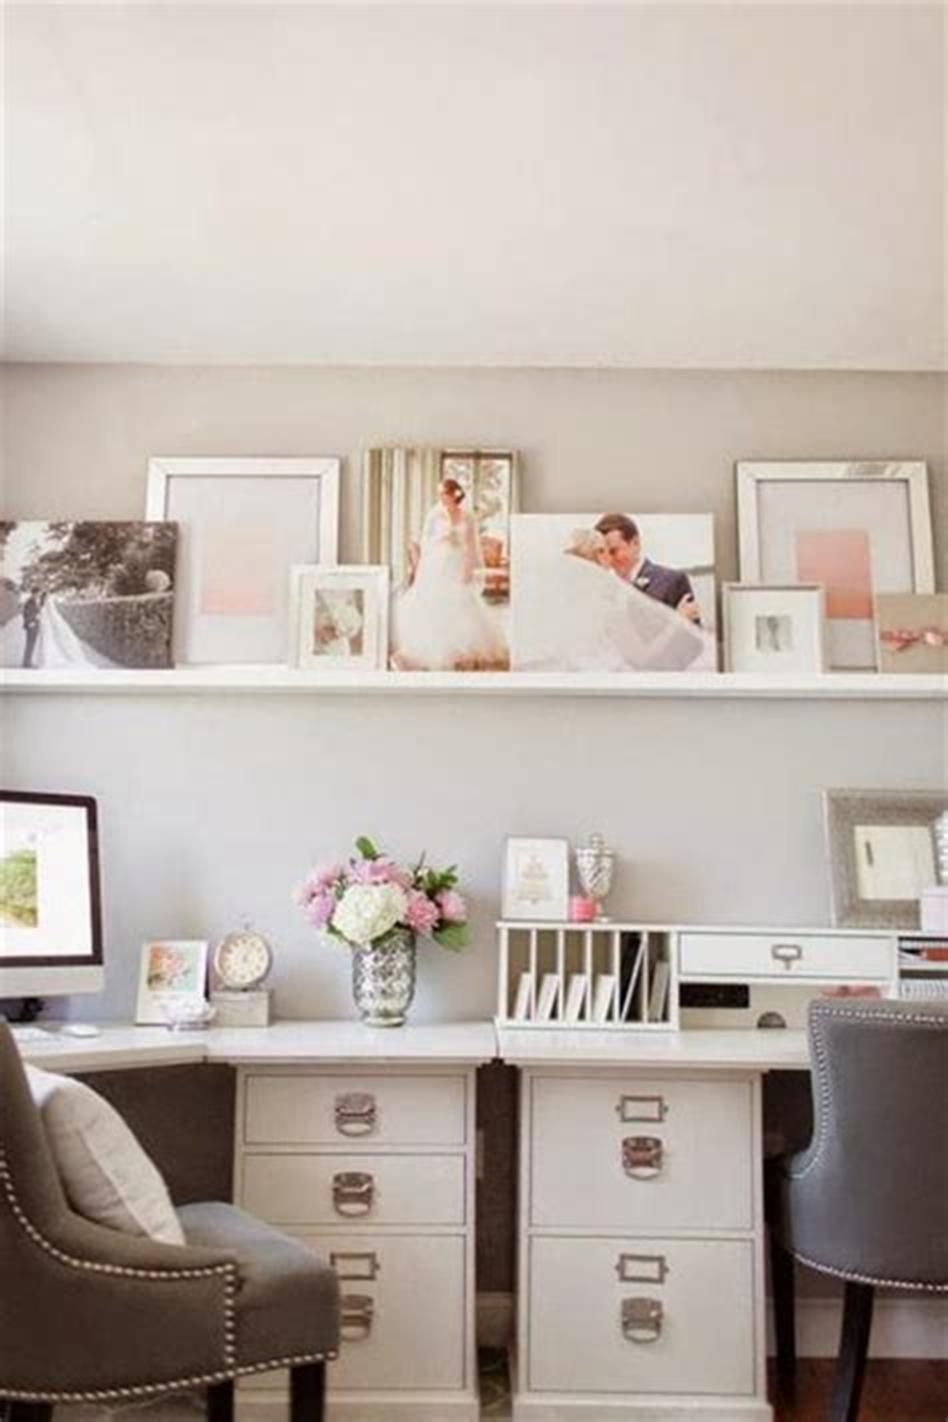 ✔ 48 Best Small Home Office Design and Decorating Ideas